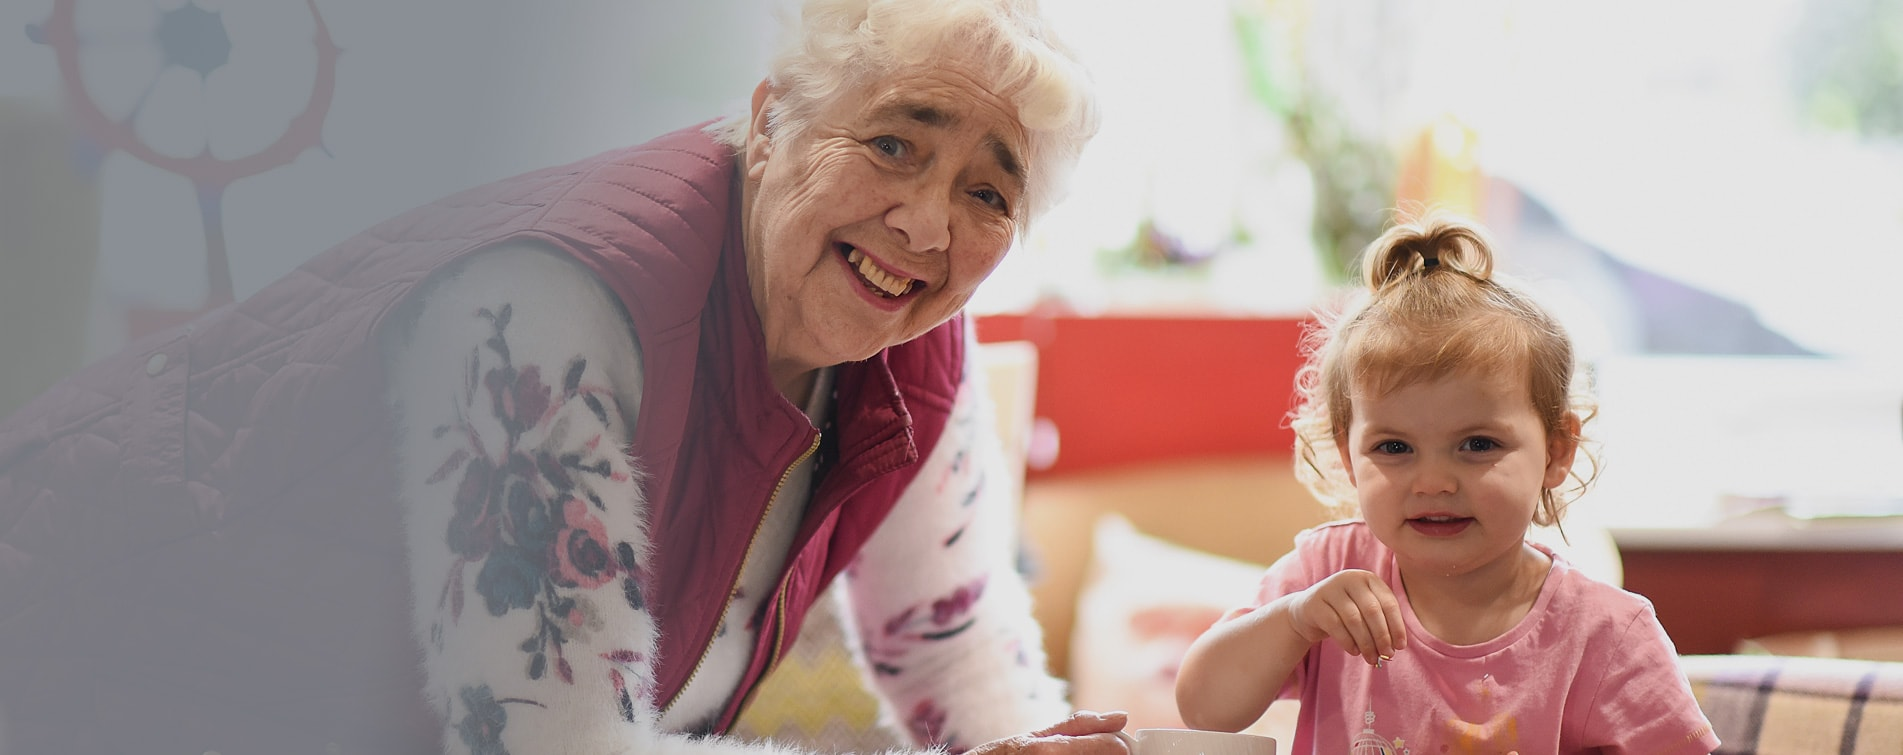 Residential, nursing, respite and dementia care in Shropshire